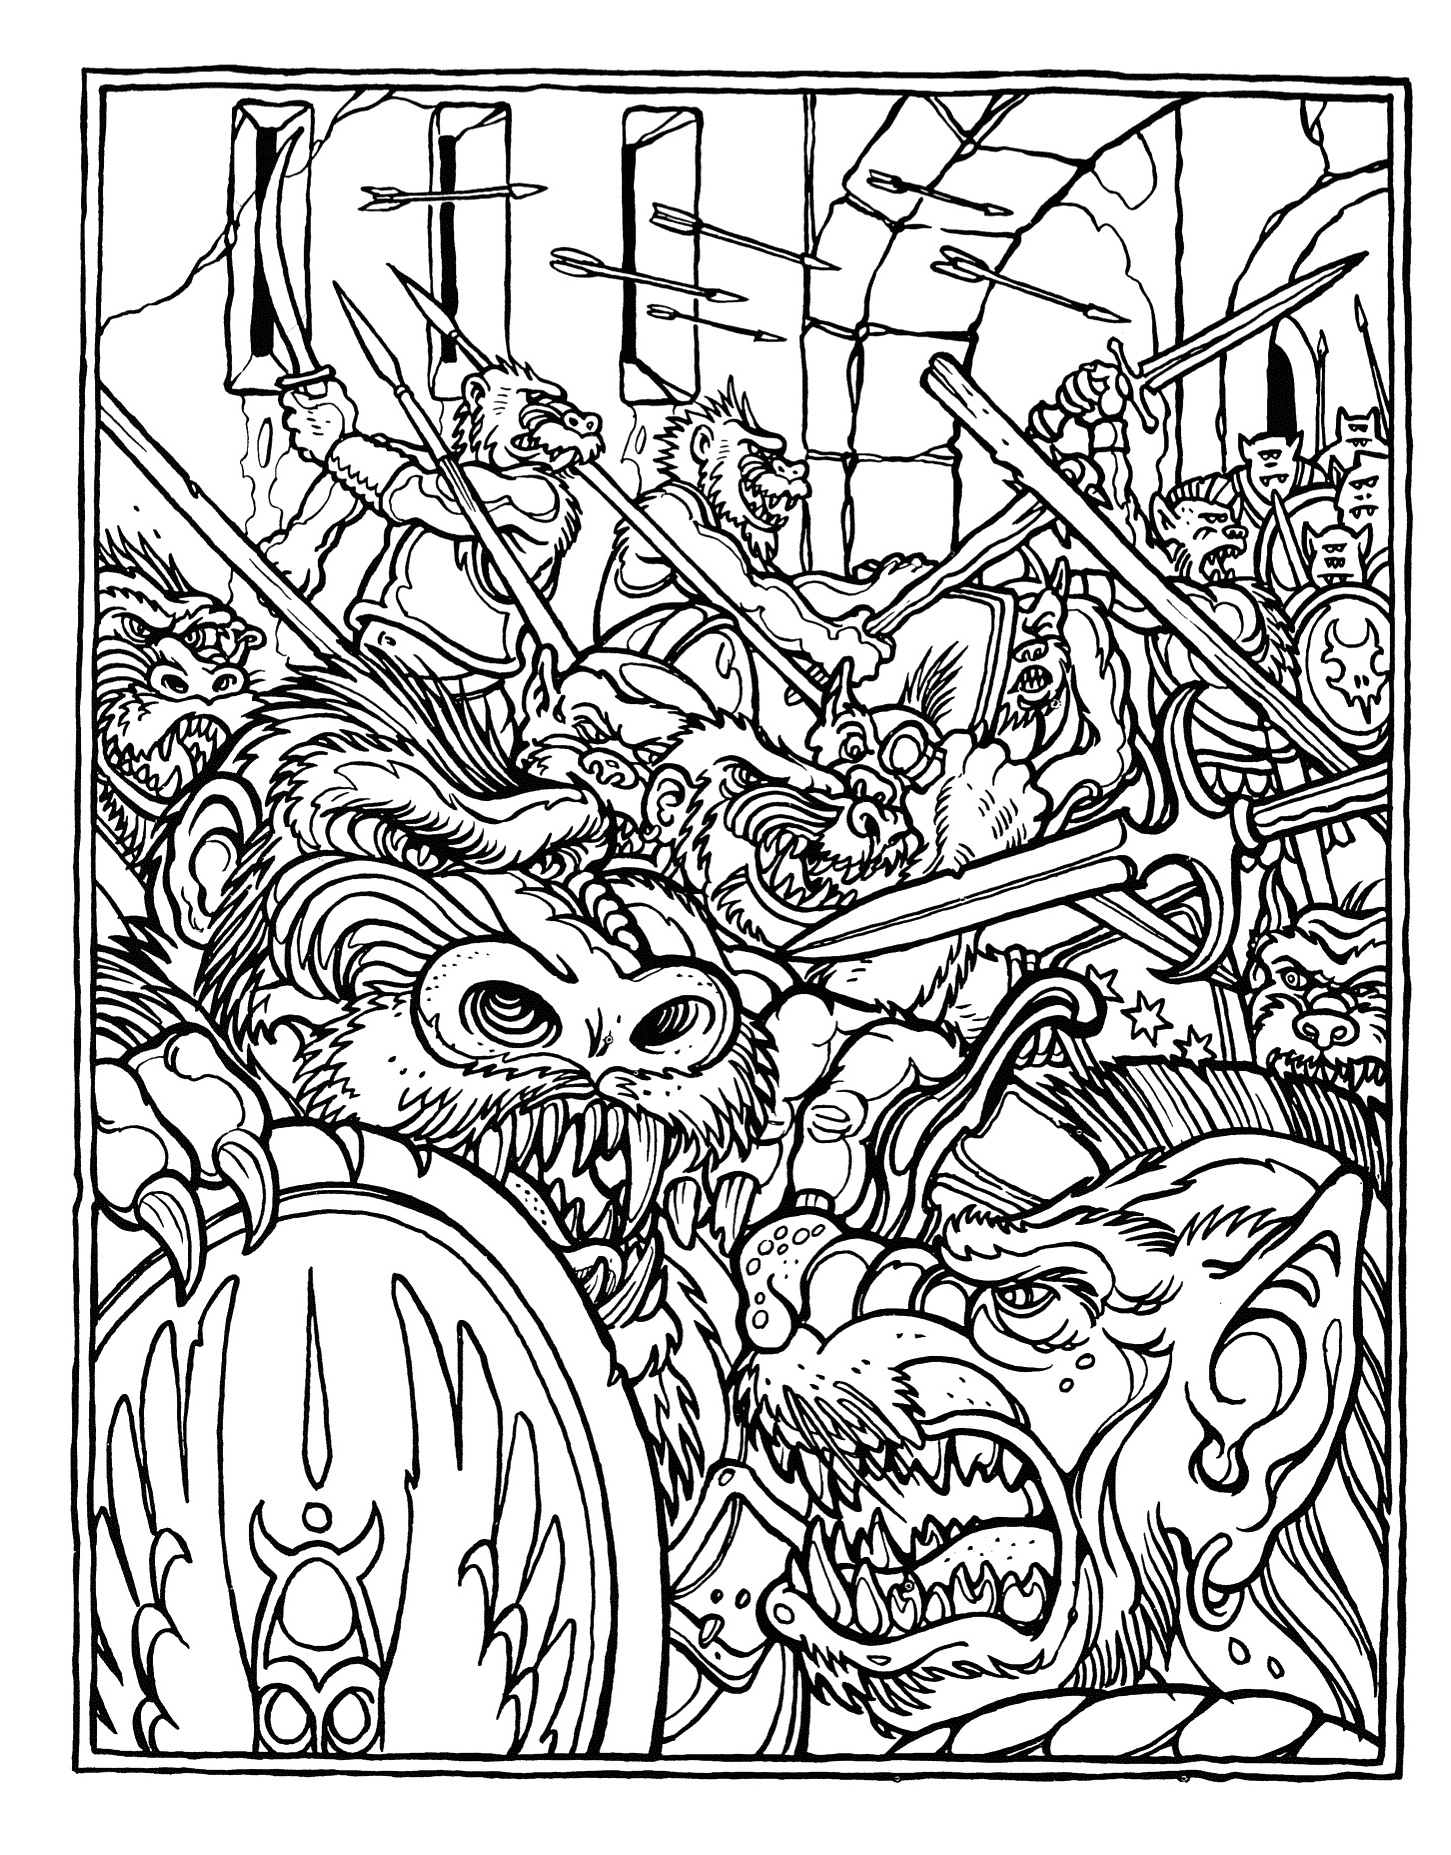 dungeons and dragons coloring pages - photo #8